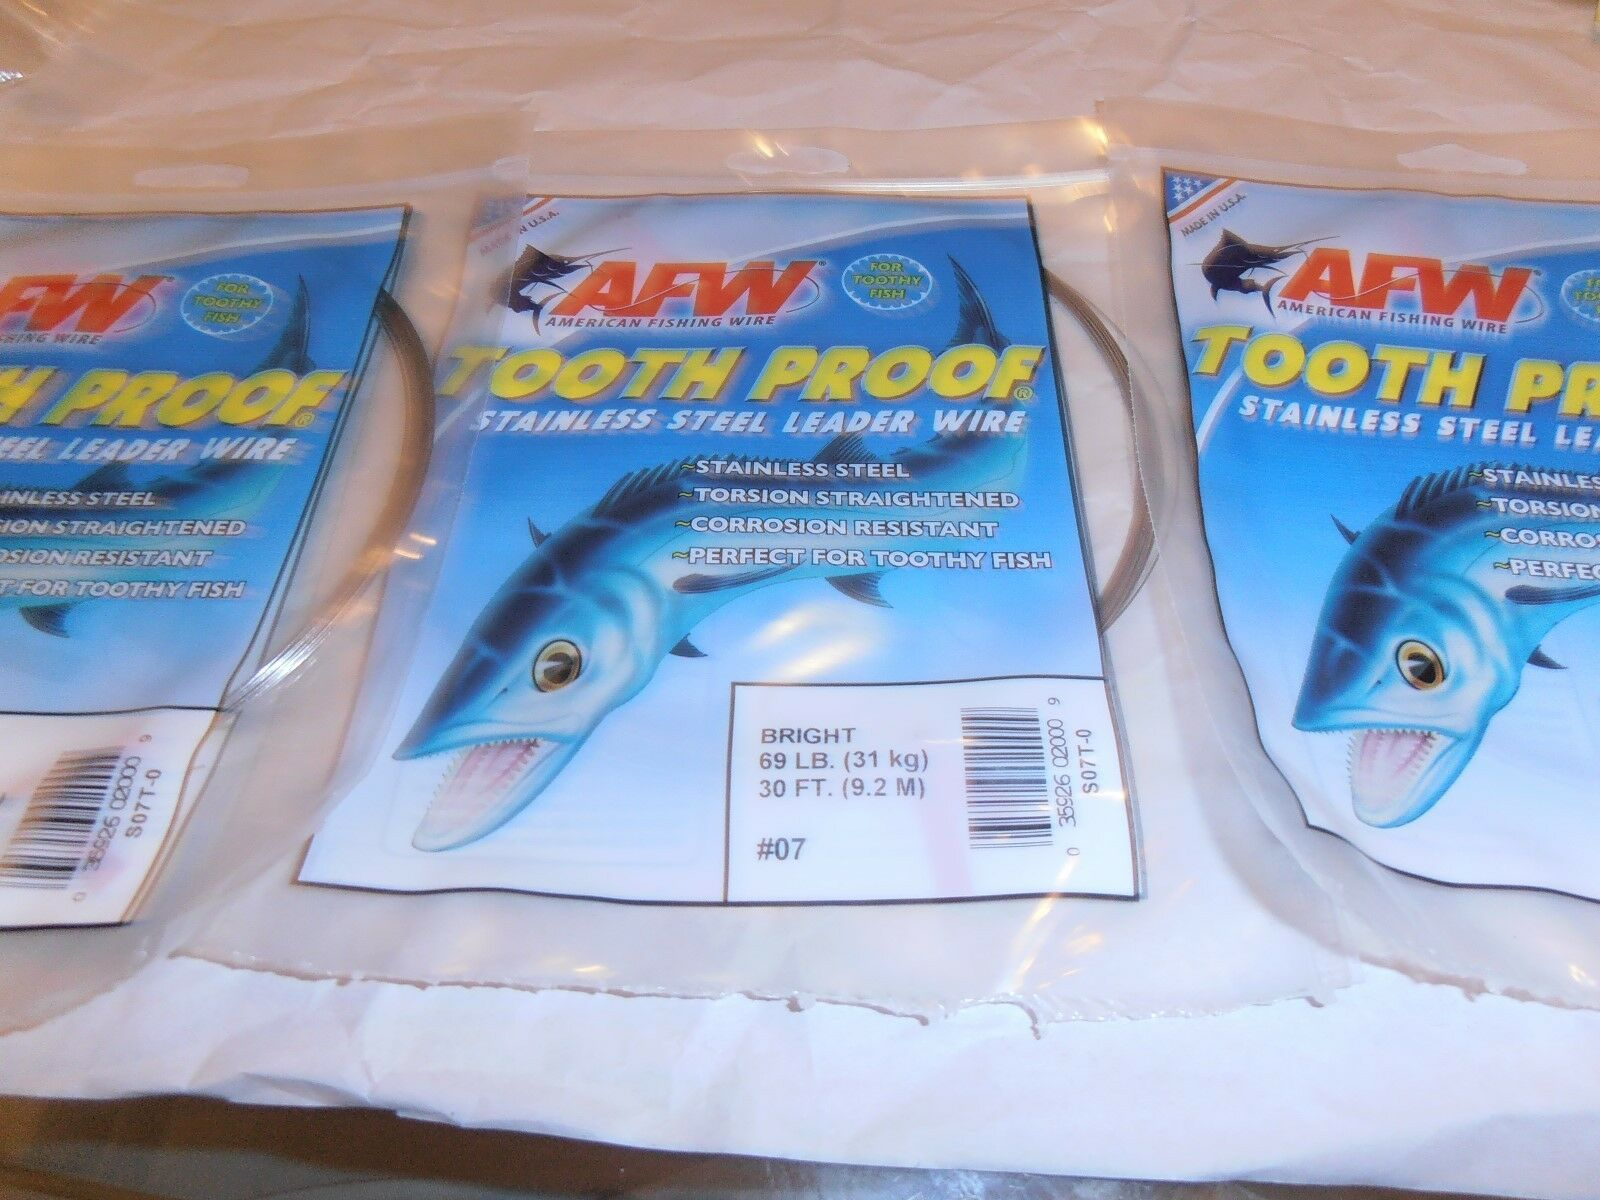 AFW TOOTH PROOF STAINLESS STEEL LEADER WIRE 30 FT.-3 PACK LOT #18-325 LB.